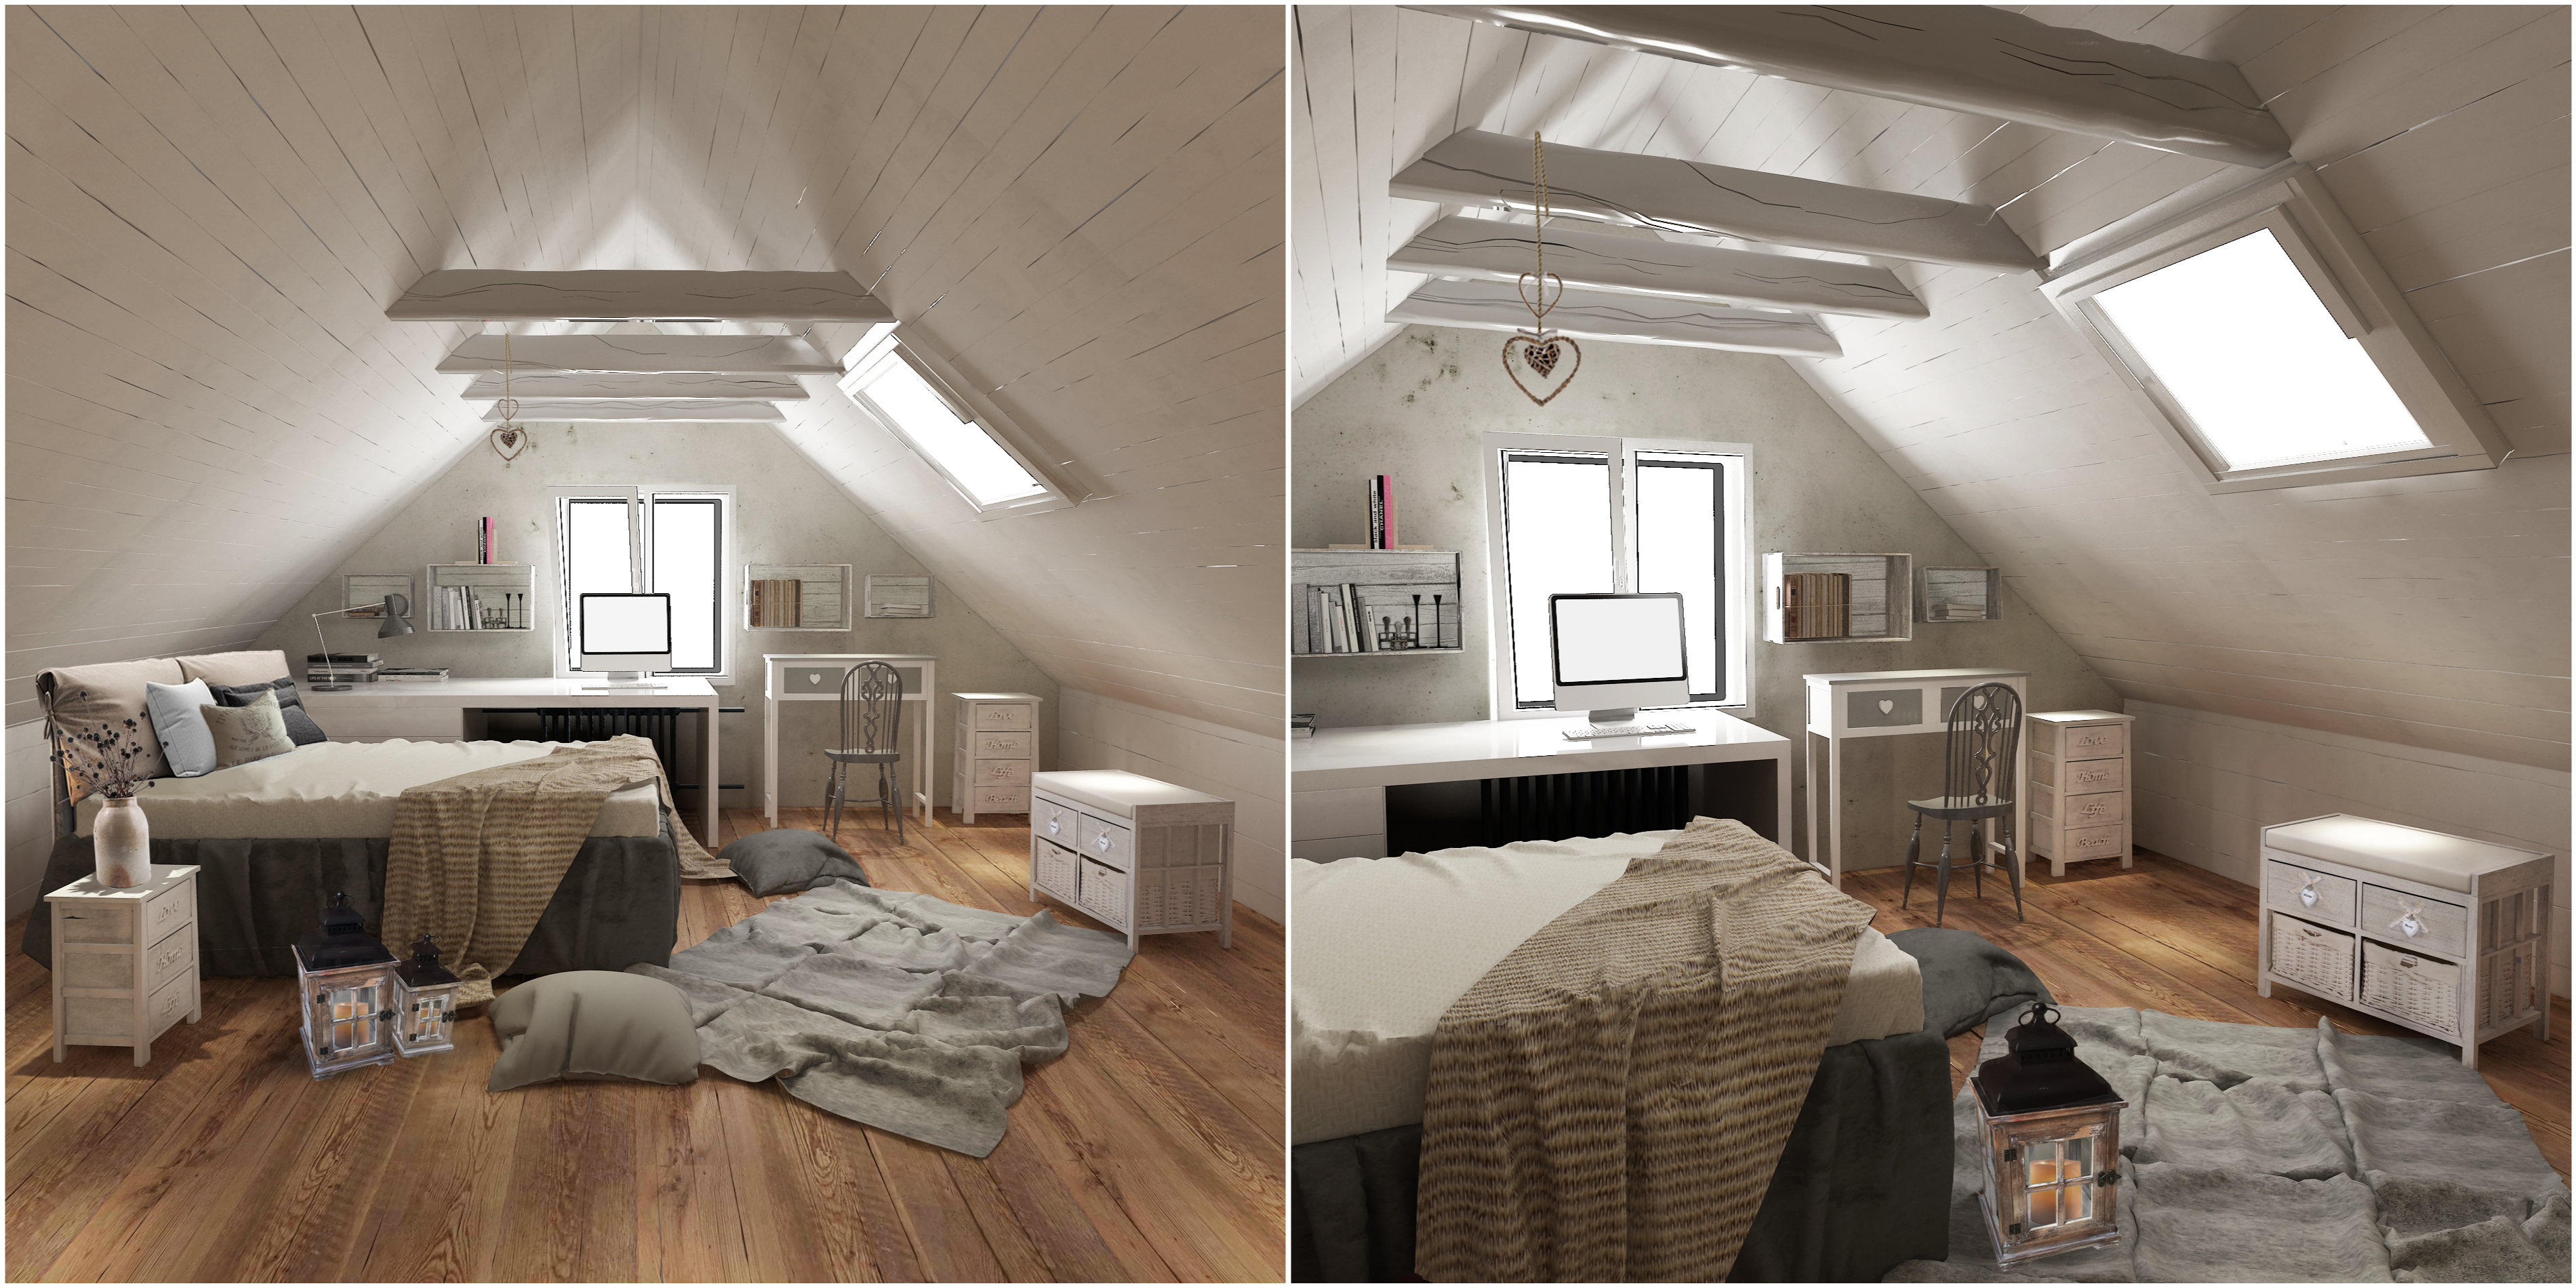 5 idee per arredare la camera da letto in stile shabby chic for Idee per arredare casa stile country